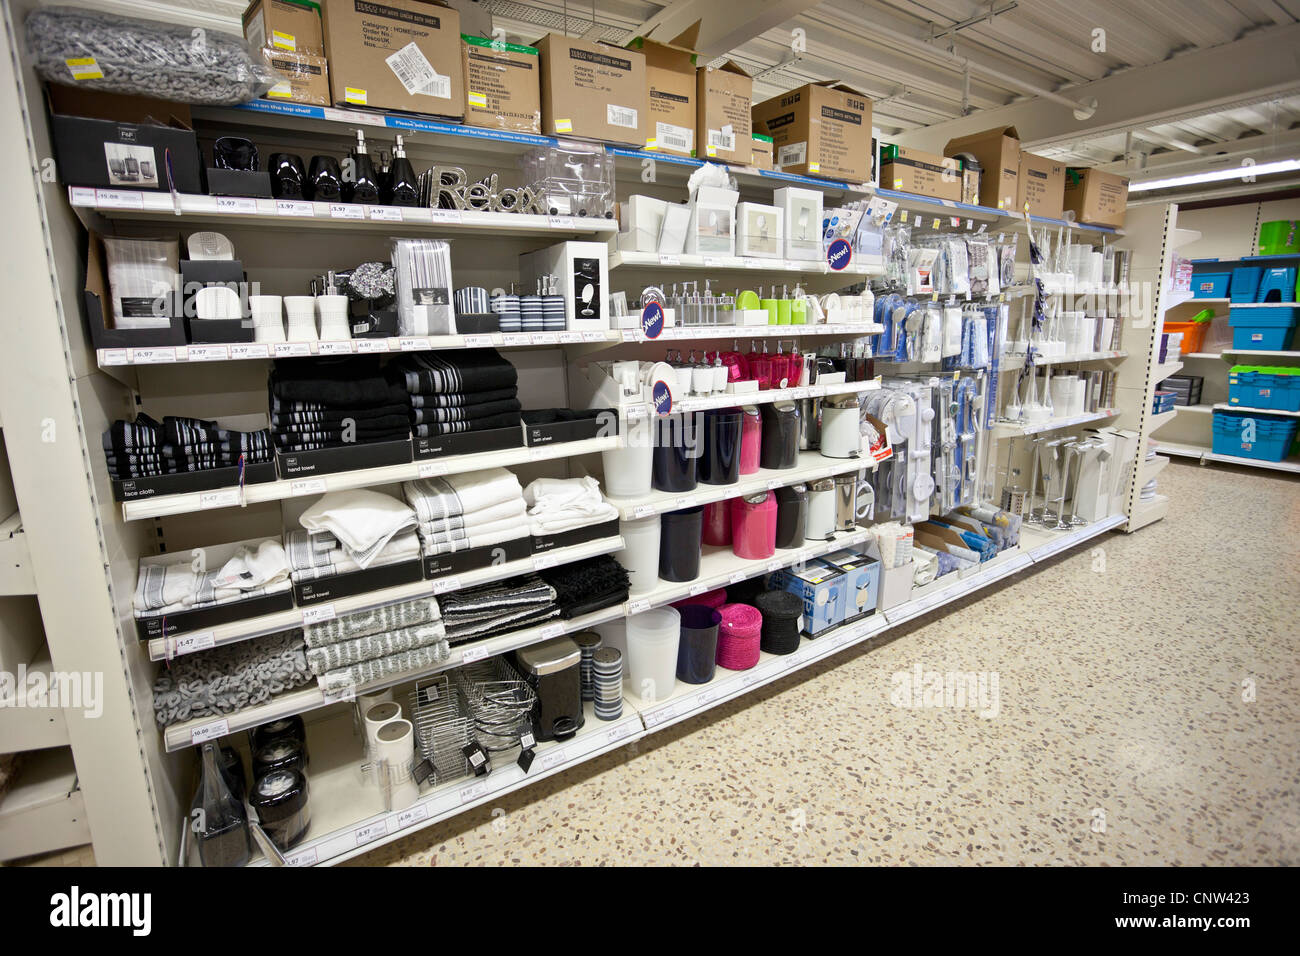 Shop bathroom accessories - Bathroom Accessories And Toweling Shelves Of A Shop London England Uk